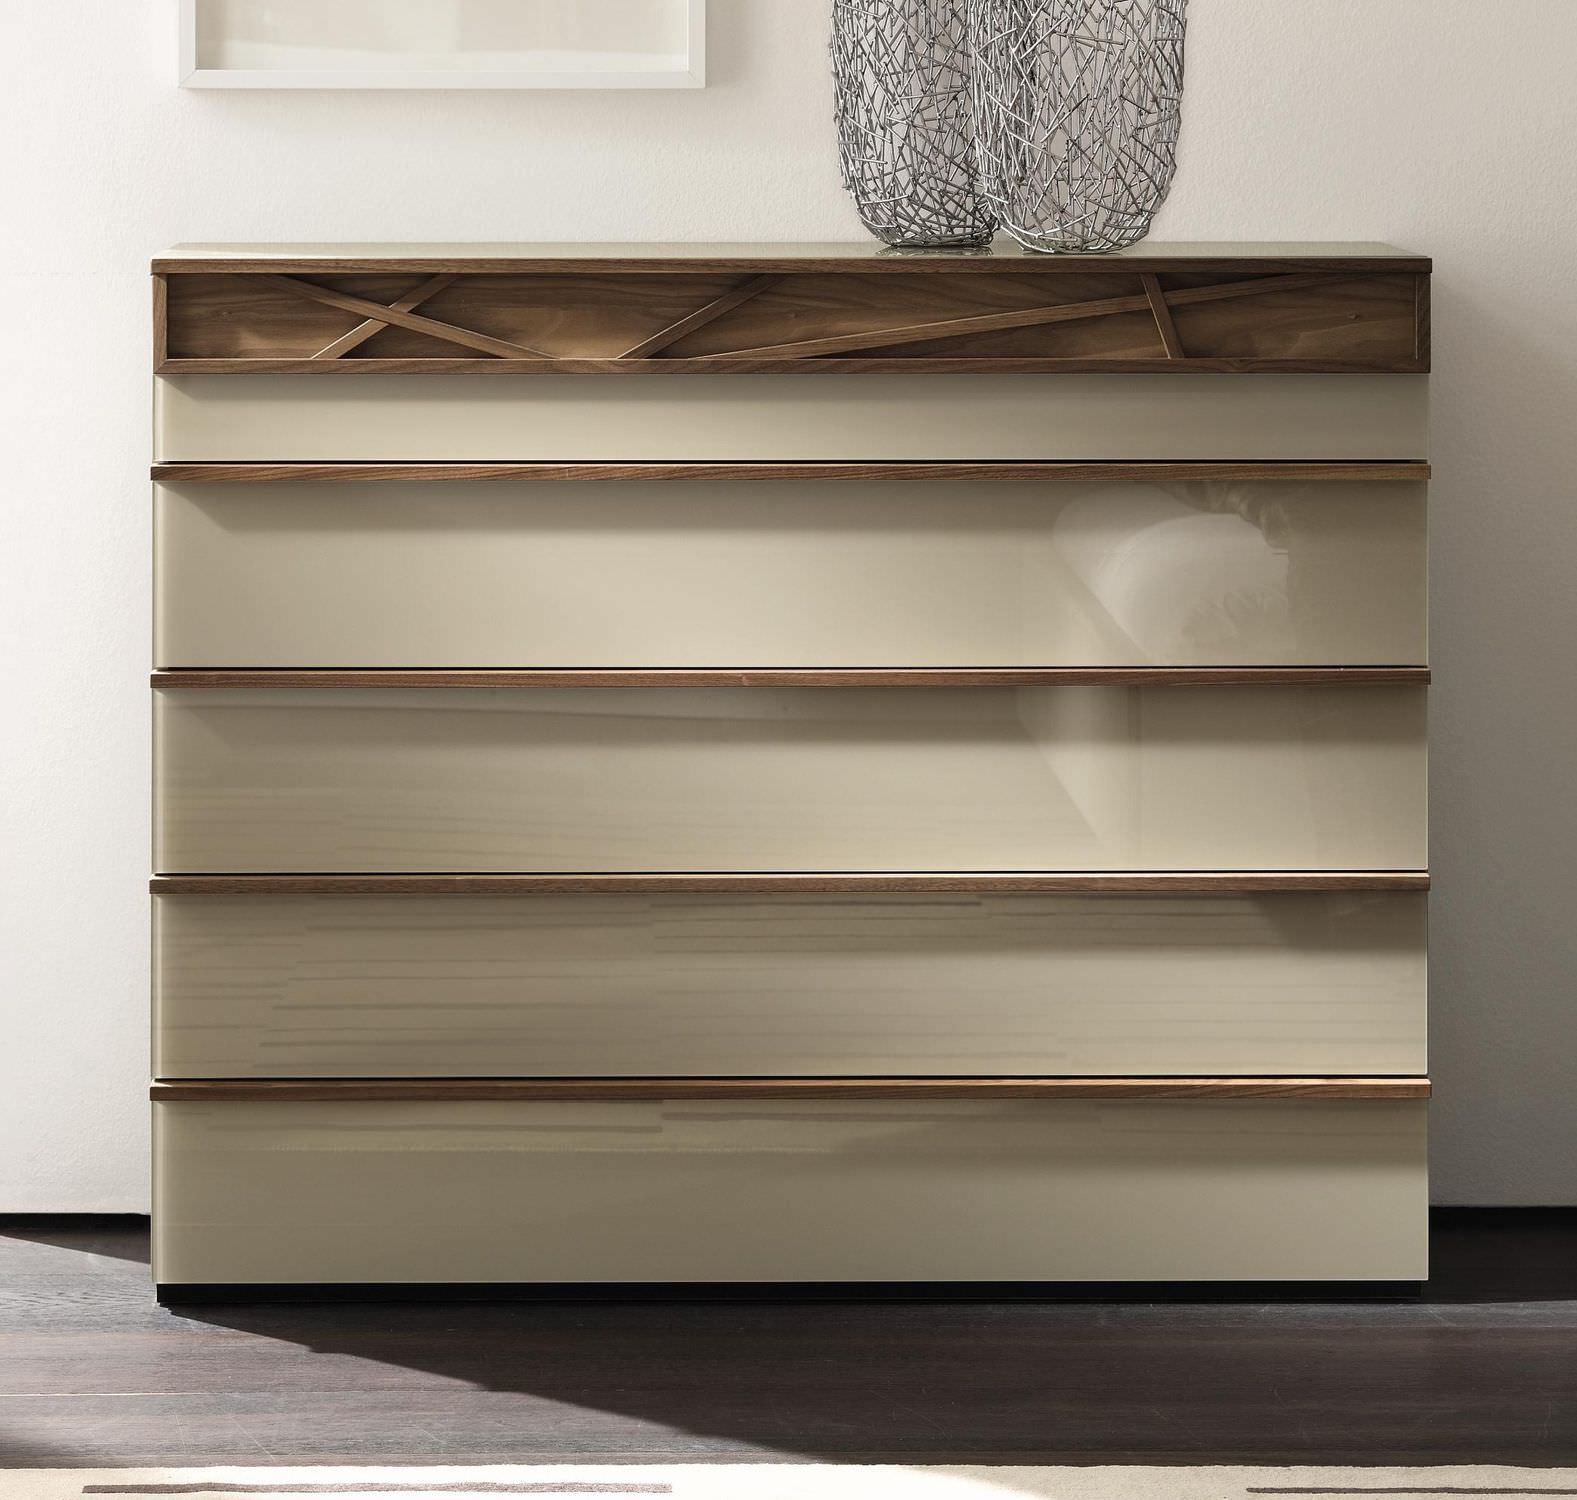 Kommode Sideboard Möbel in Massivholz-sideboard